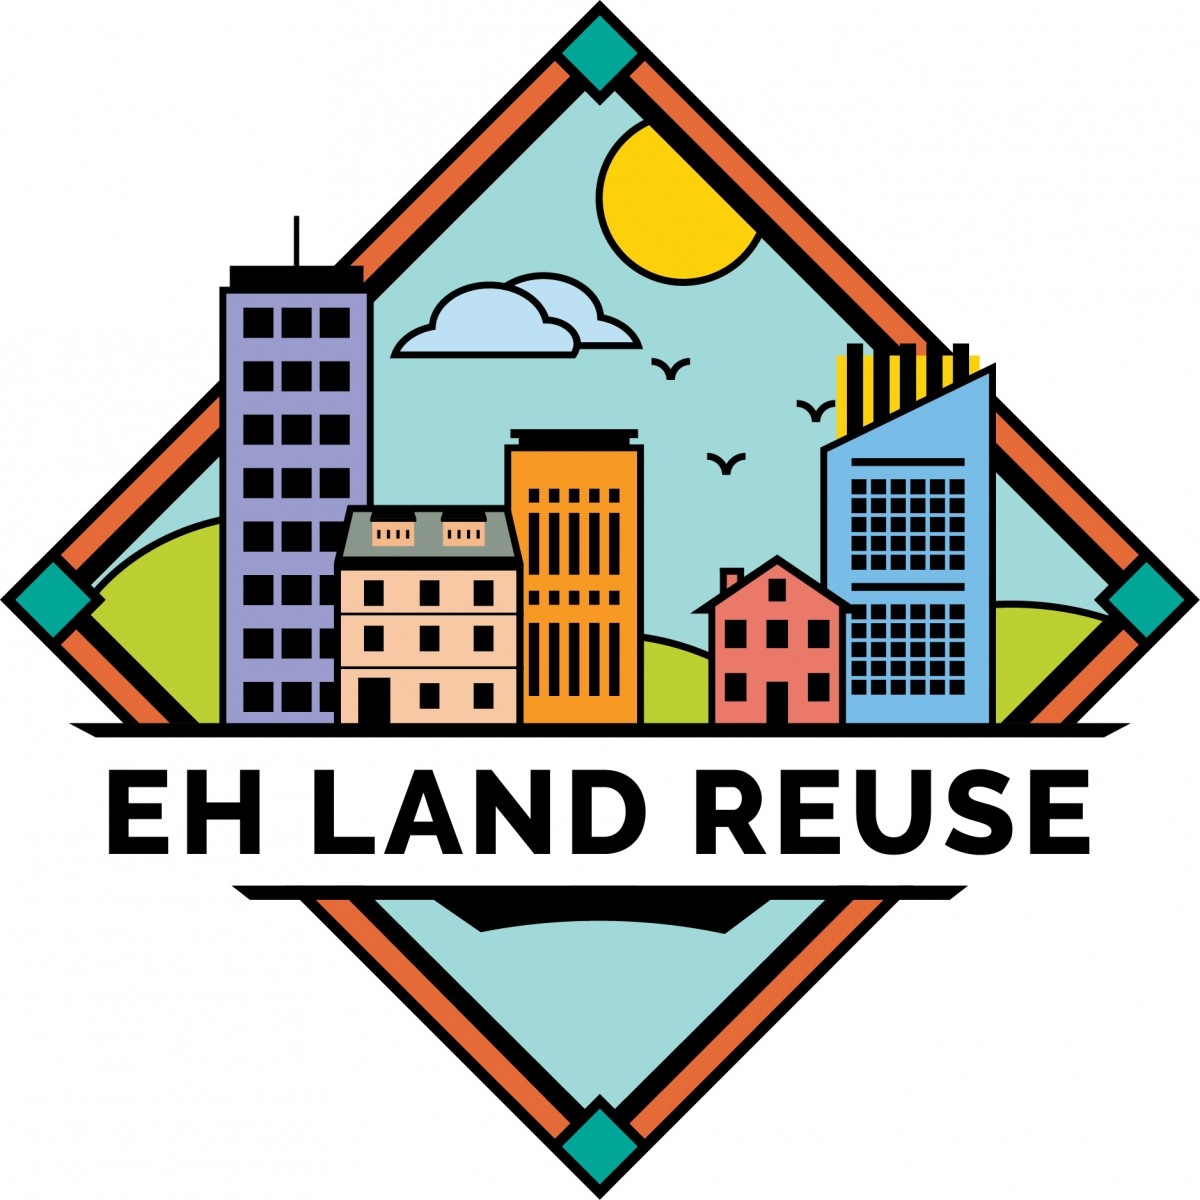 NEHA's Environmental Health Land Reuse Certificate Program